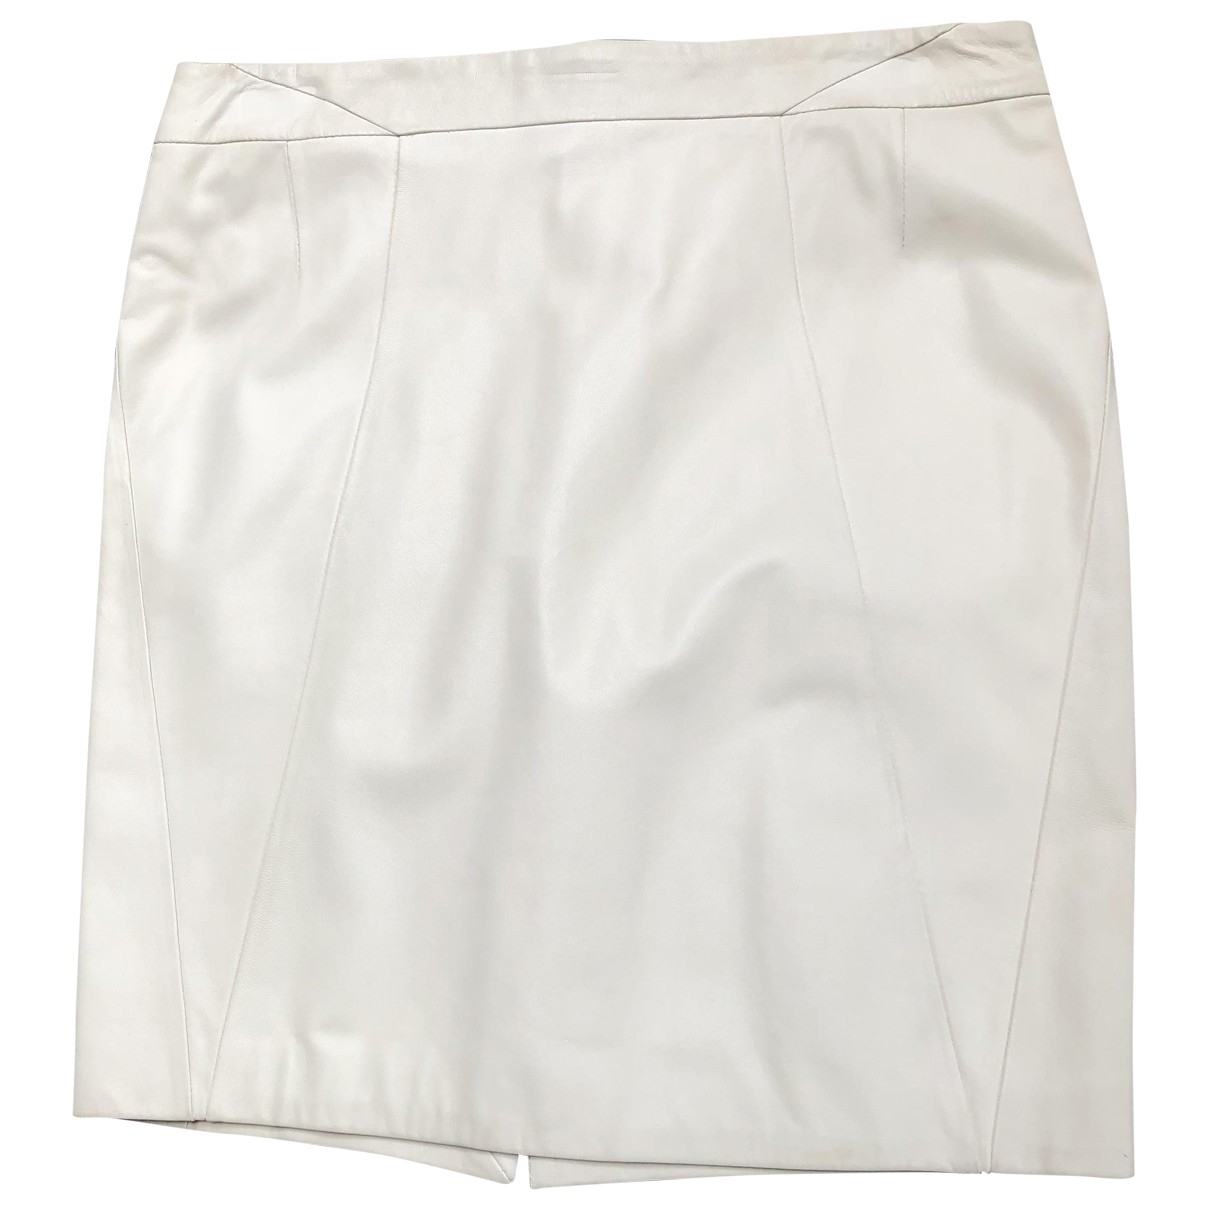 Dior \N Beige Leather skirt for Women 40 FR